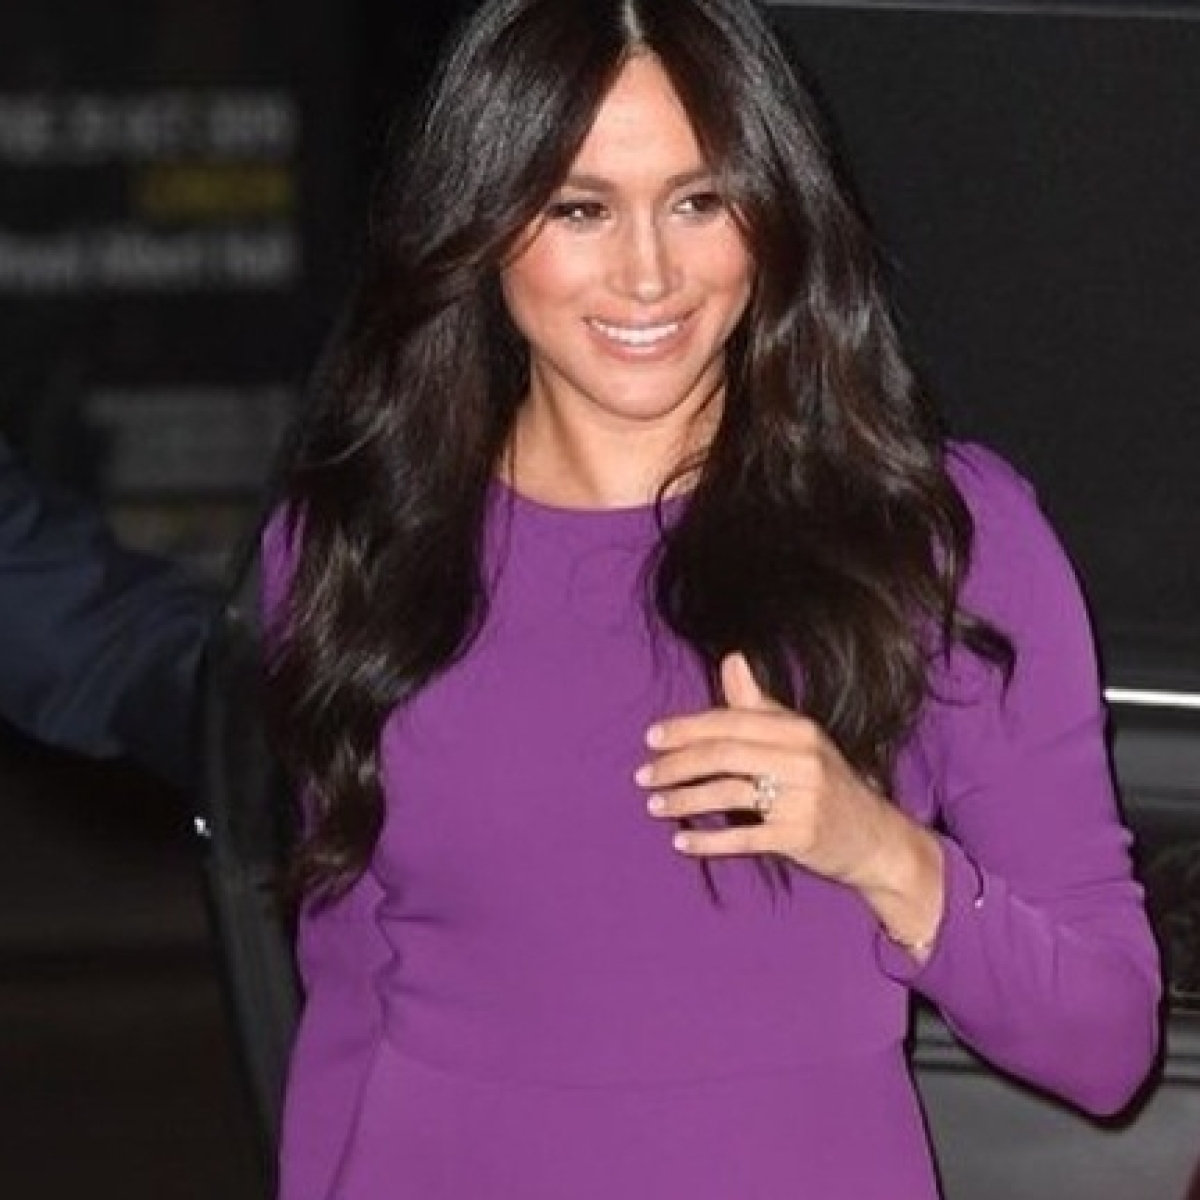 Meghan Markle inks deal with Disney